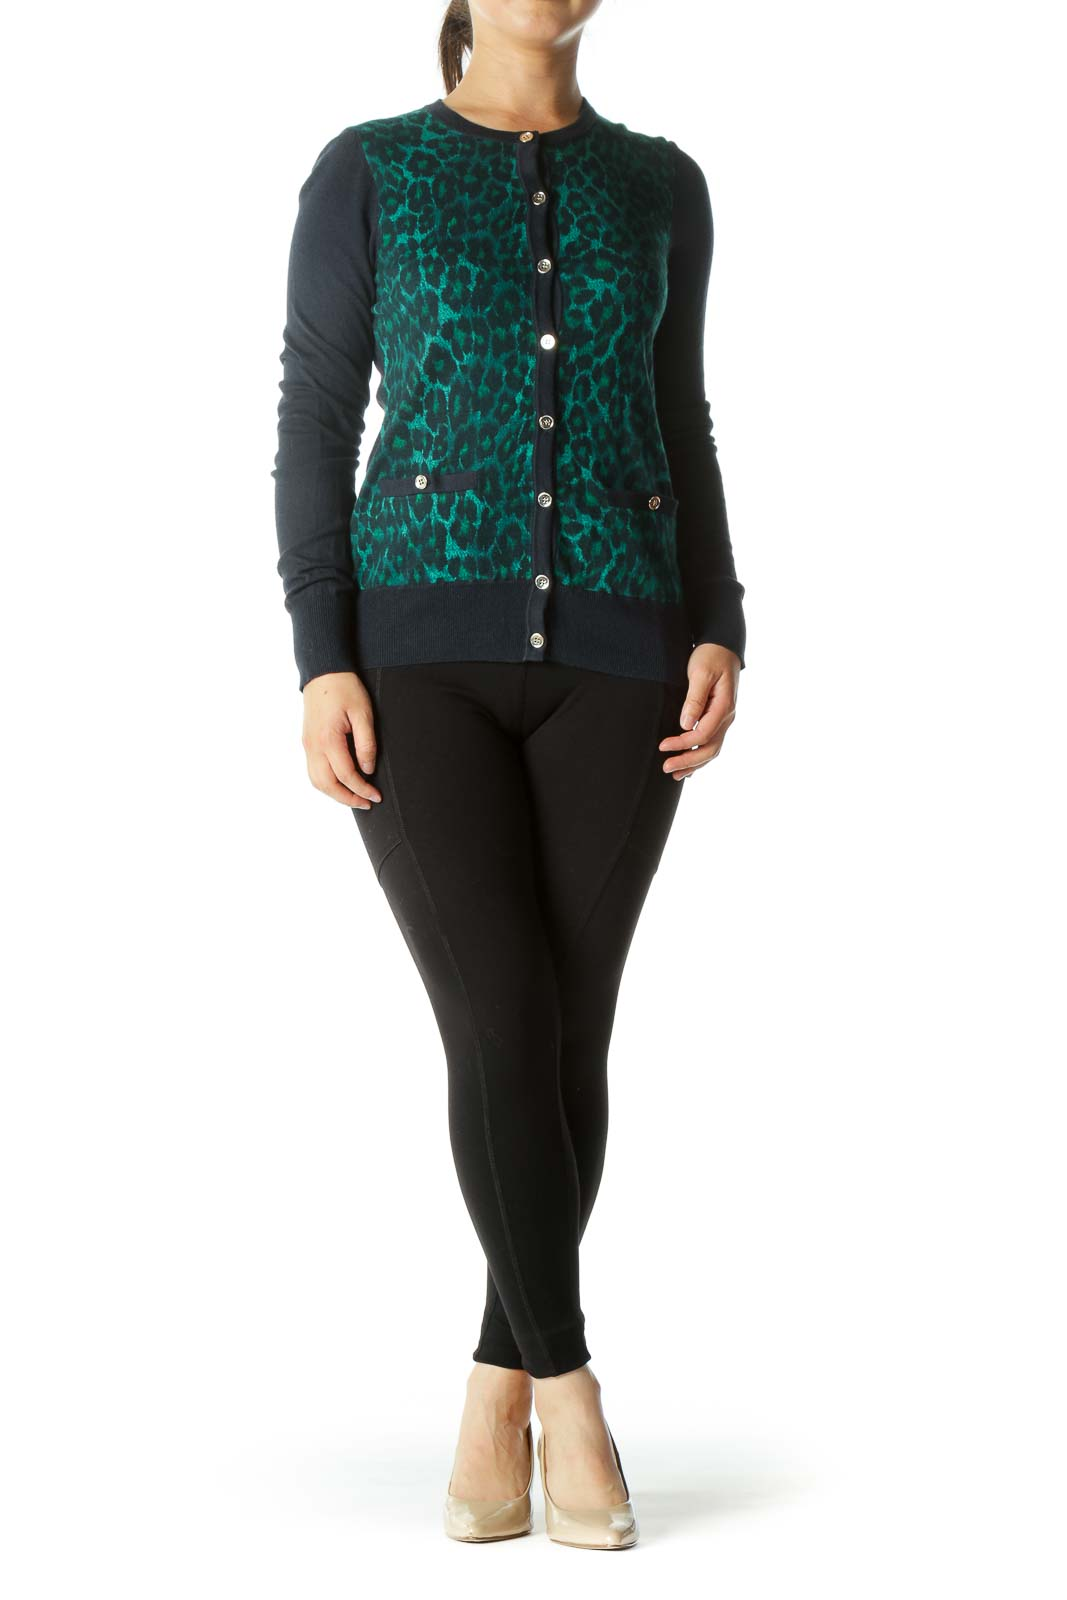 Green and Navy Animal Print Cardigan with Gold Buttons